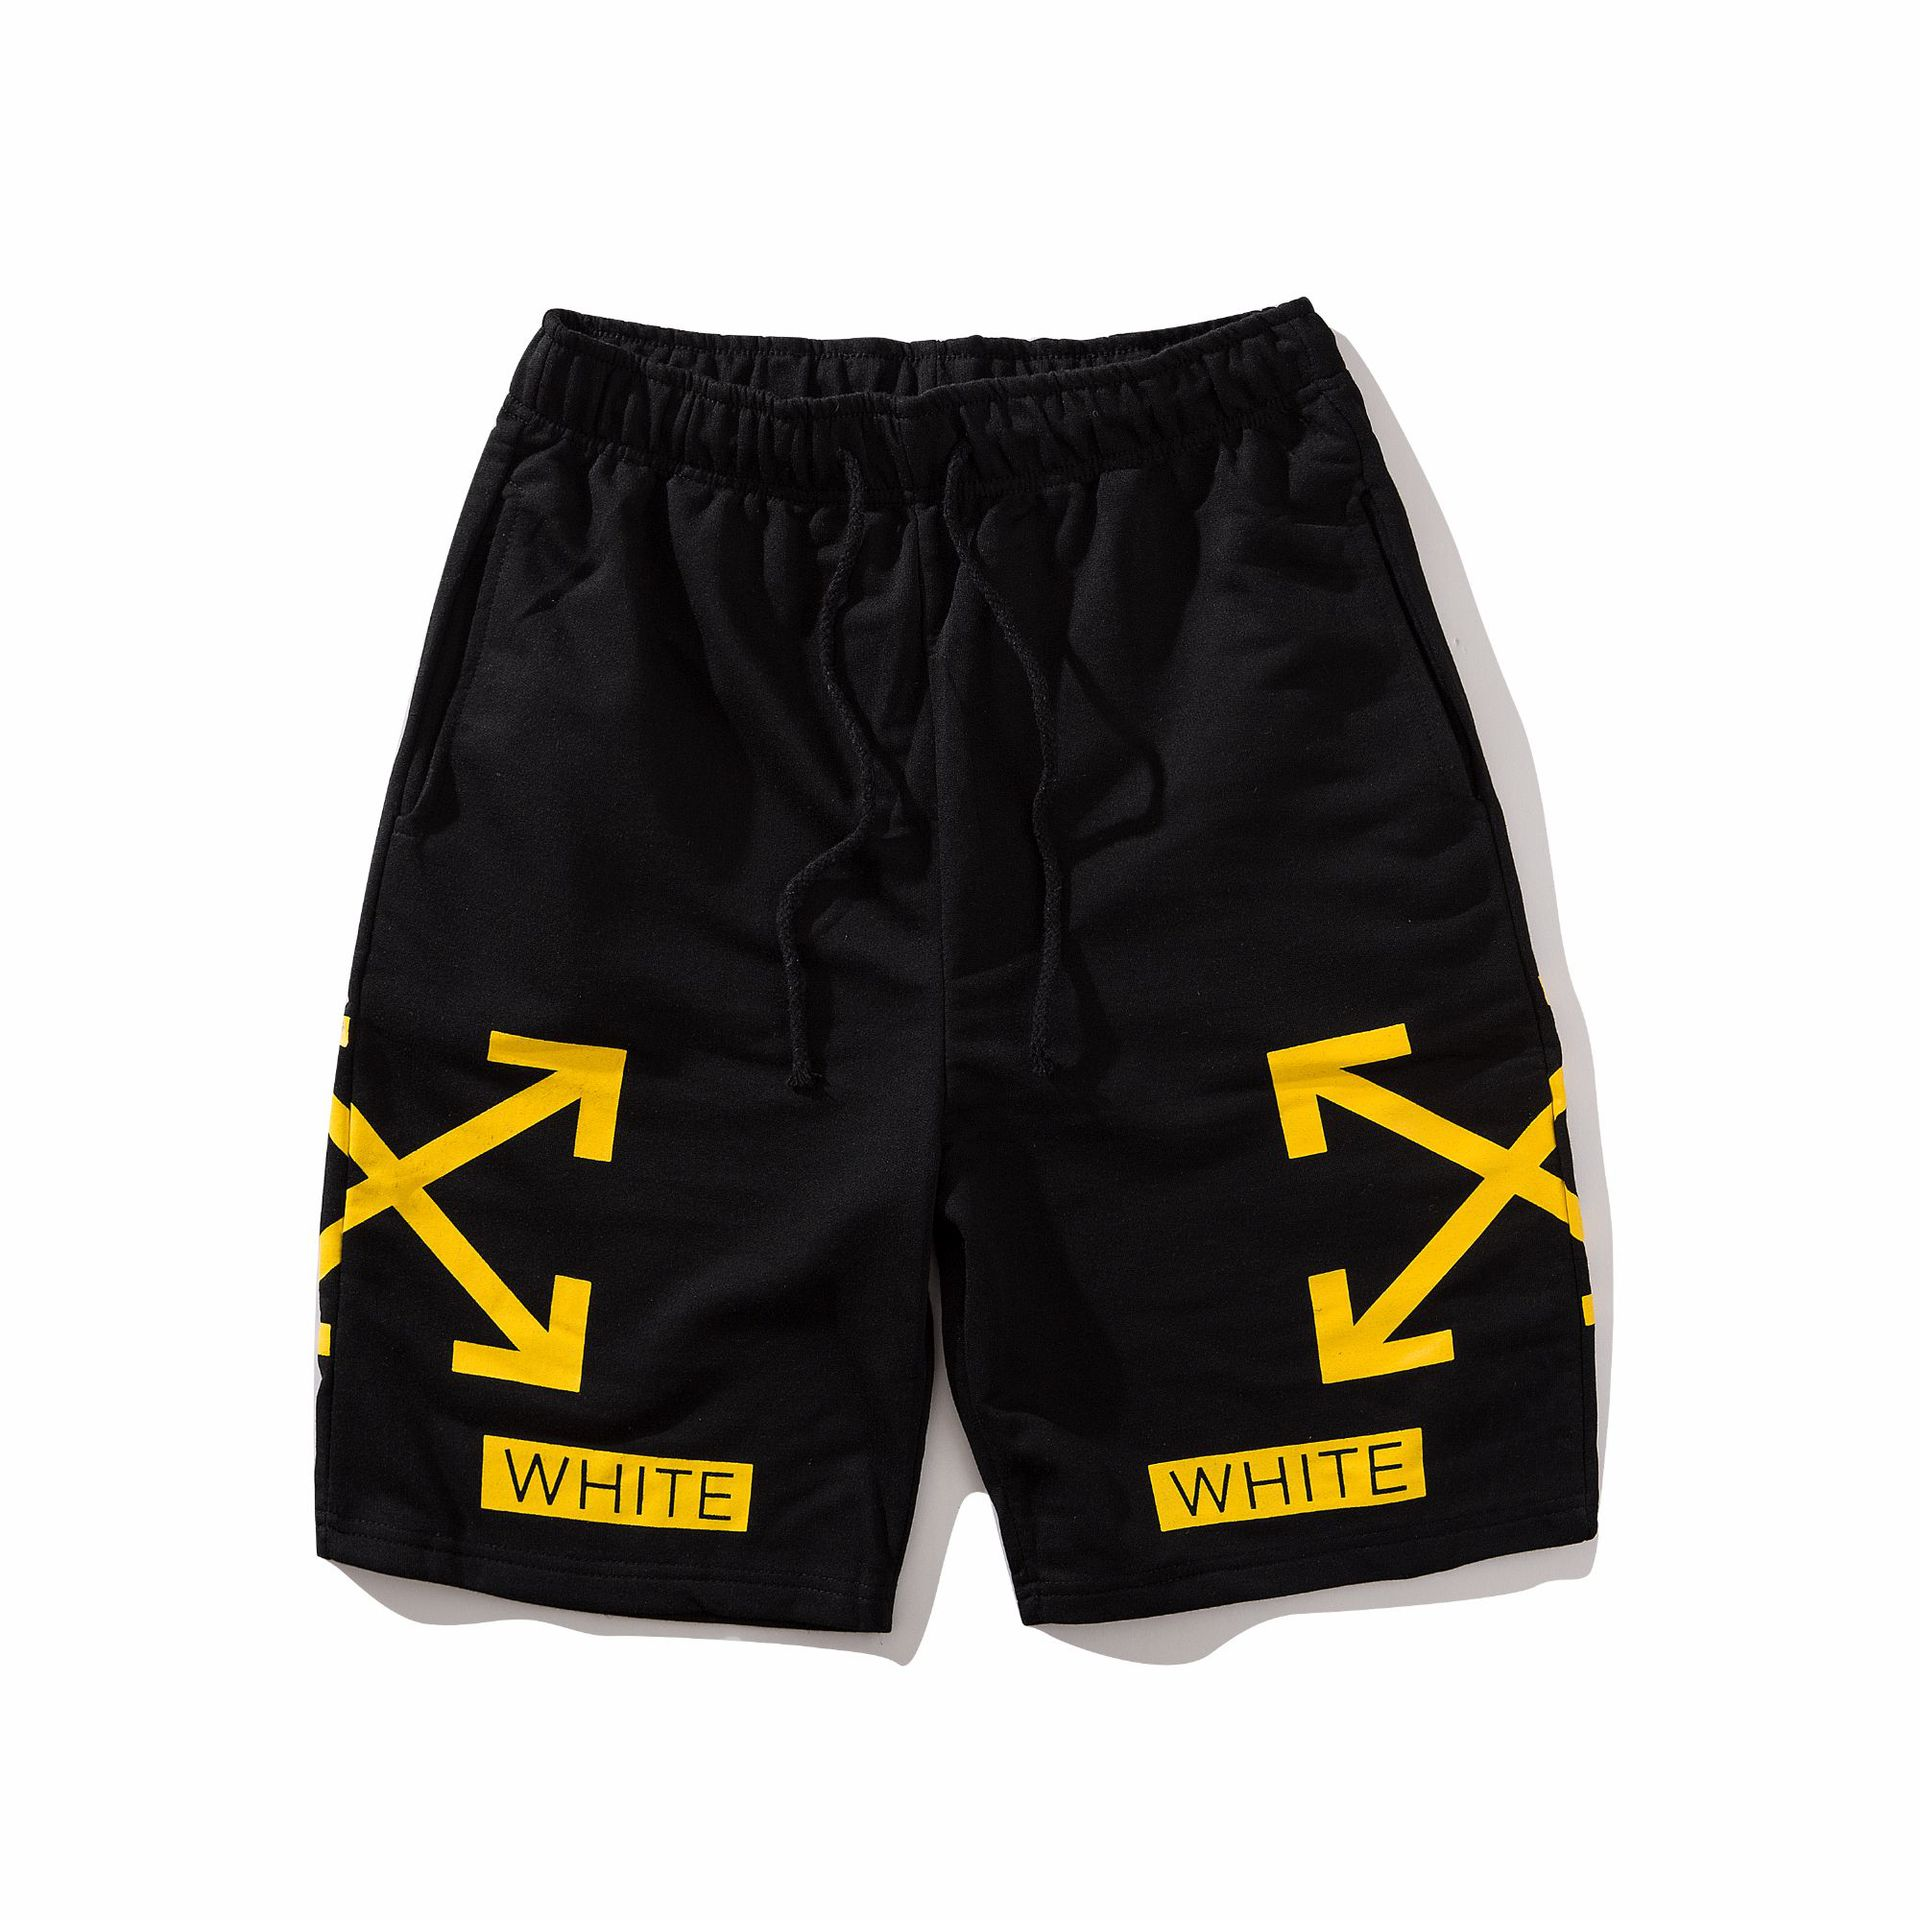 Fashion Product Popular Brand Summer Ow Arrowhead Casual Pants Europe And America MEN'S Sports Pants Shorts Men And Women Couple